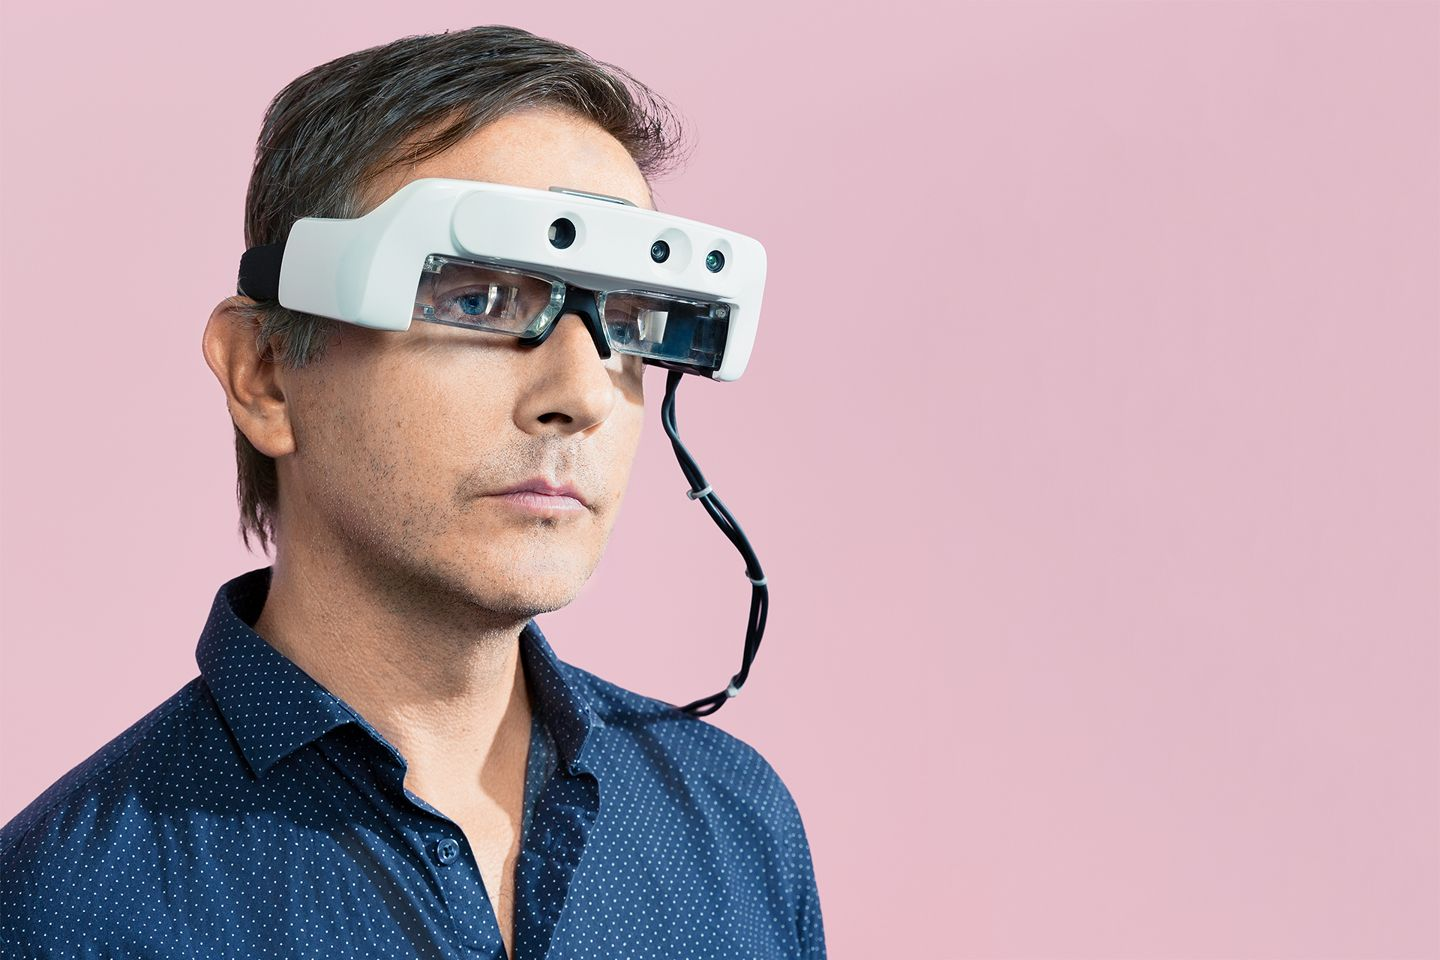 Dr. Stephen Hicks wearing the white Helios headset - Image courtesy of Wired Magazine (Credit: David Vintiner)